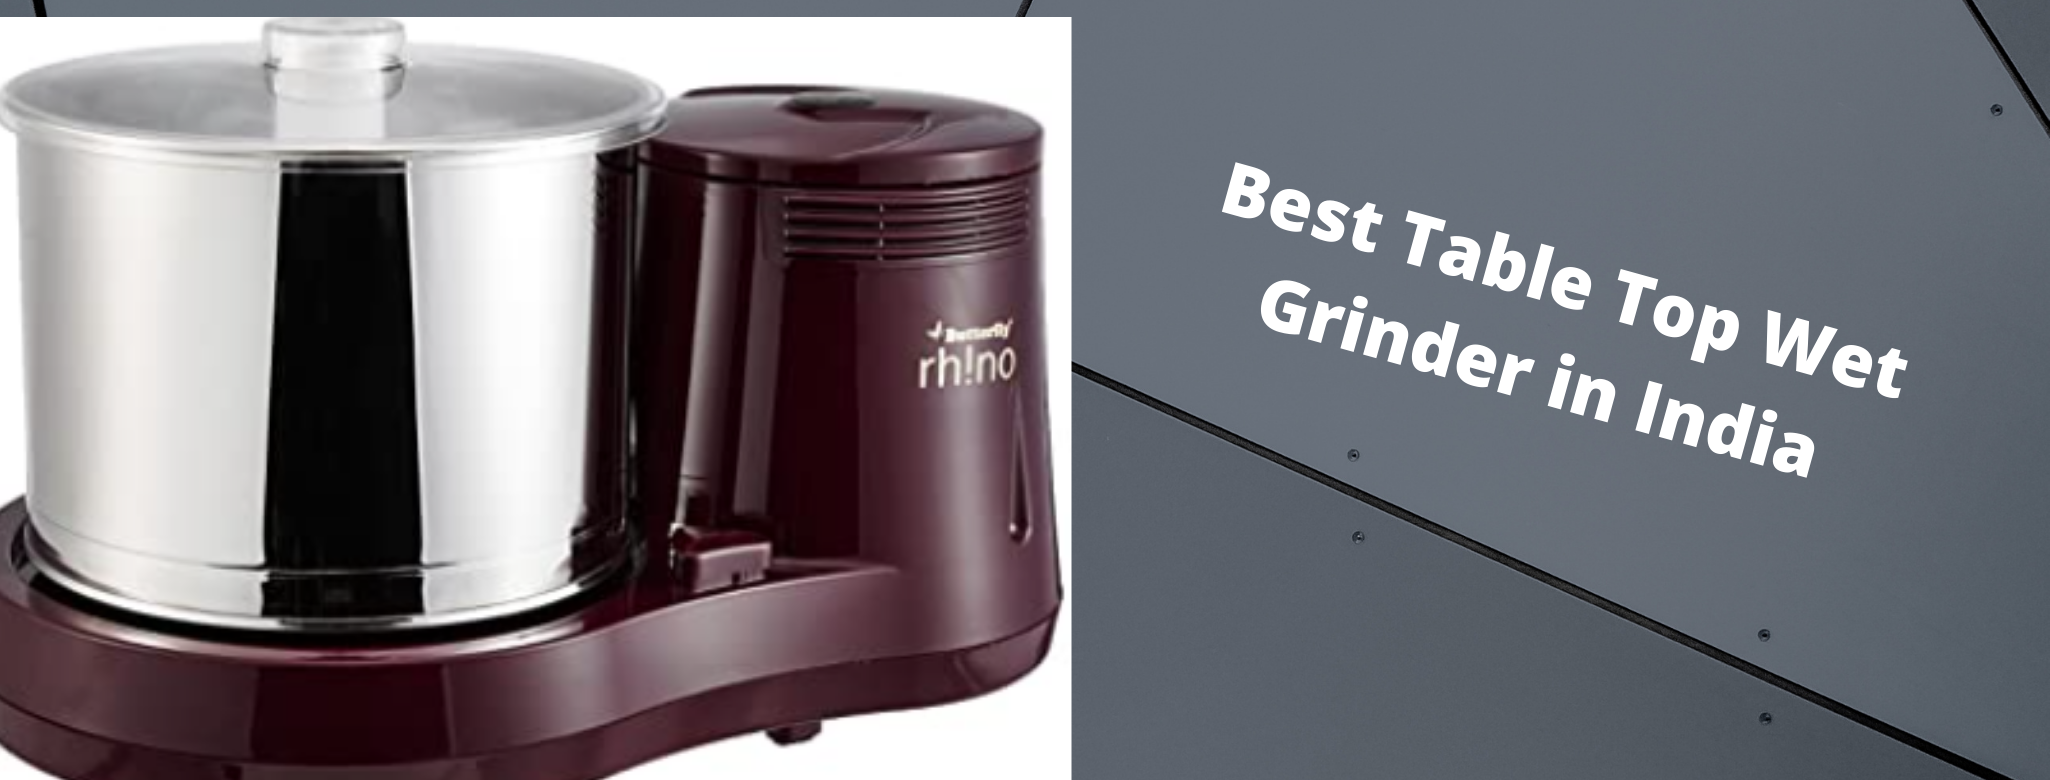 Best Table Top Wet Grinder in India